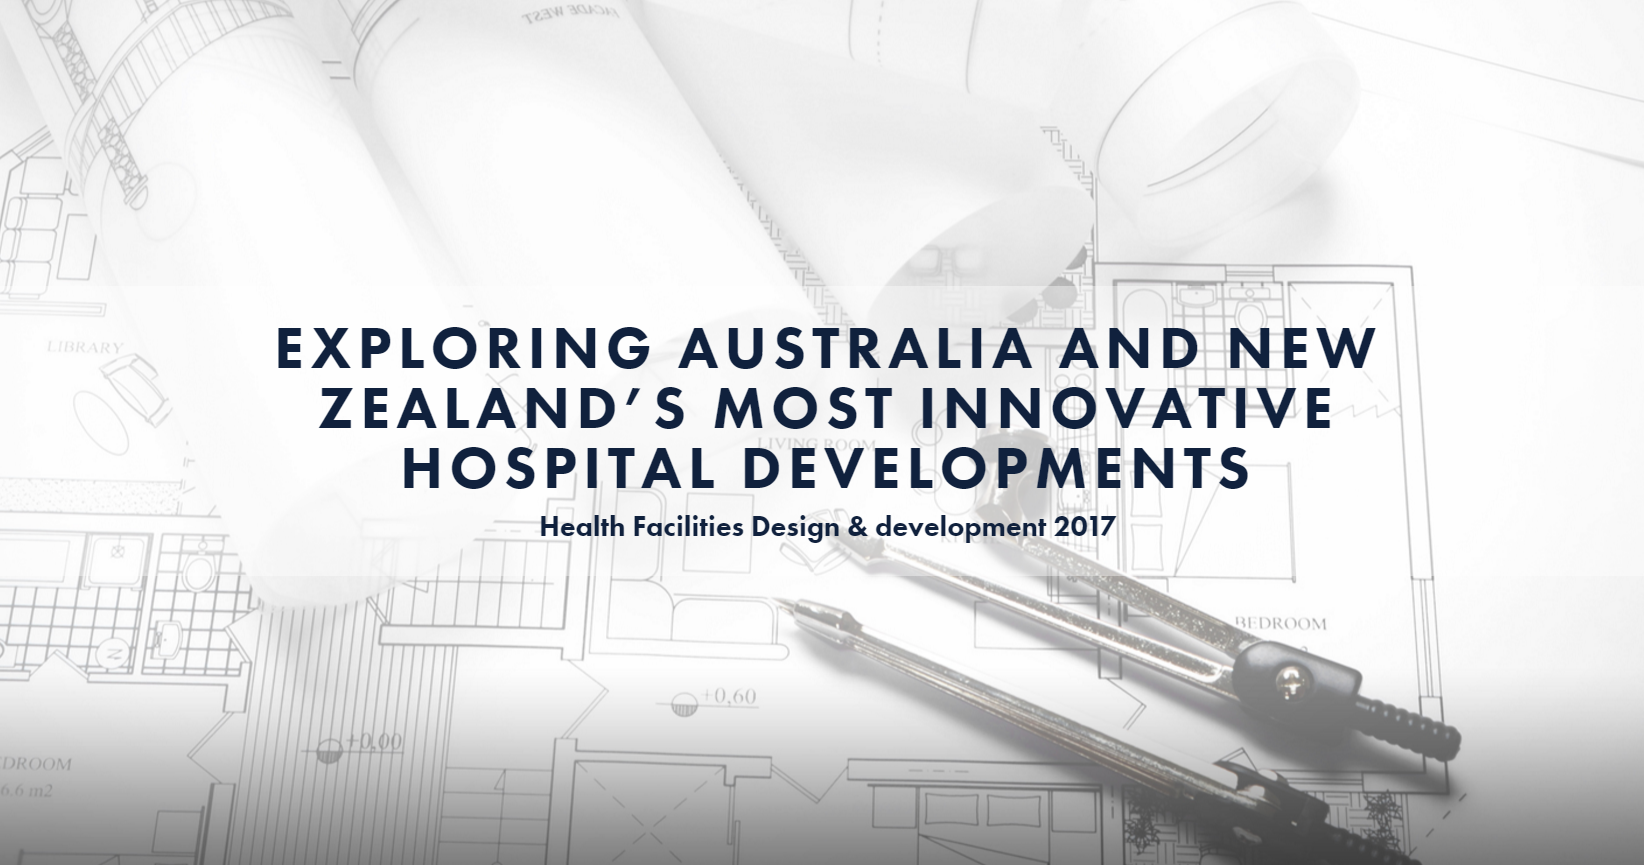 Exploring Australia and New Zealand's Most Innovative Hospital Developments